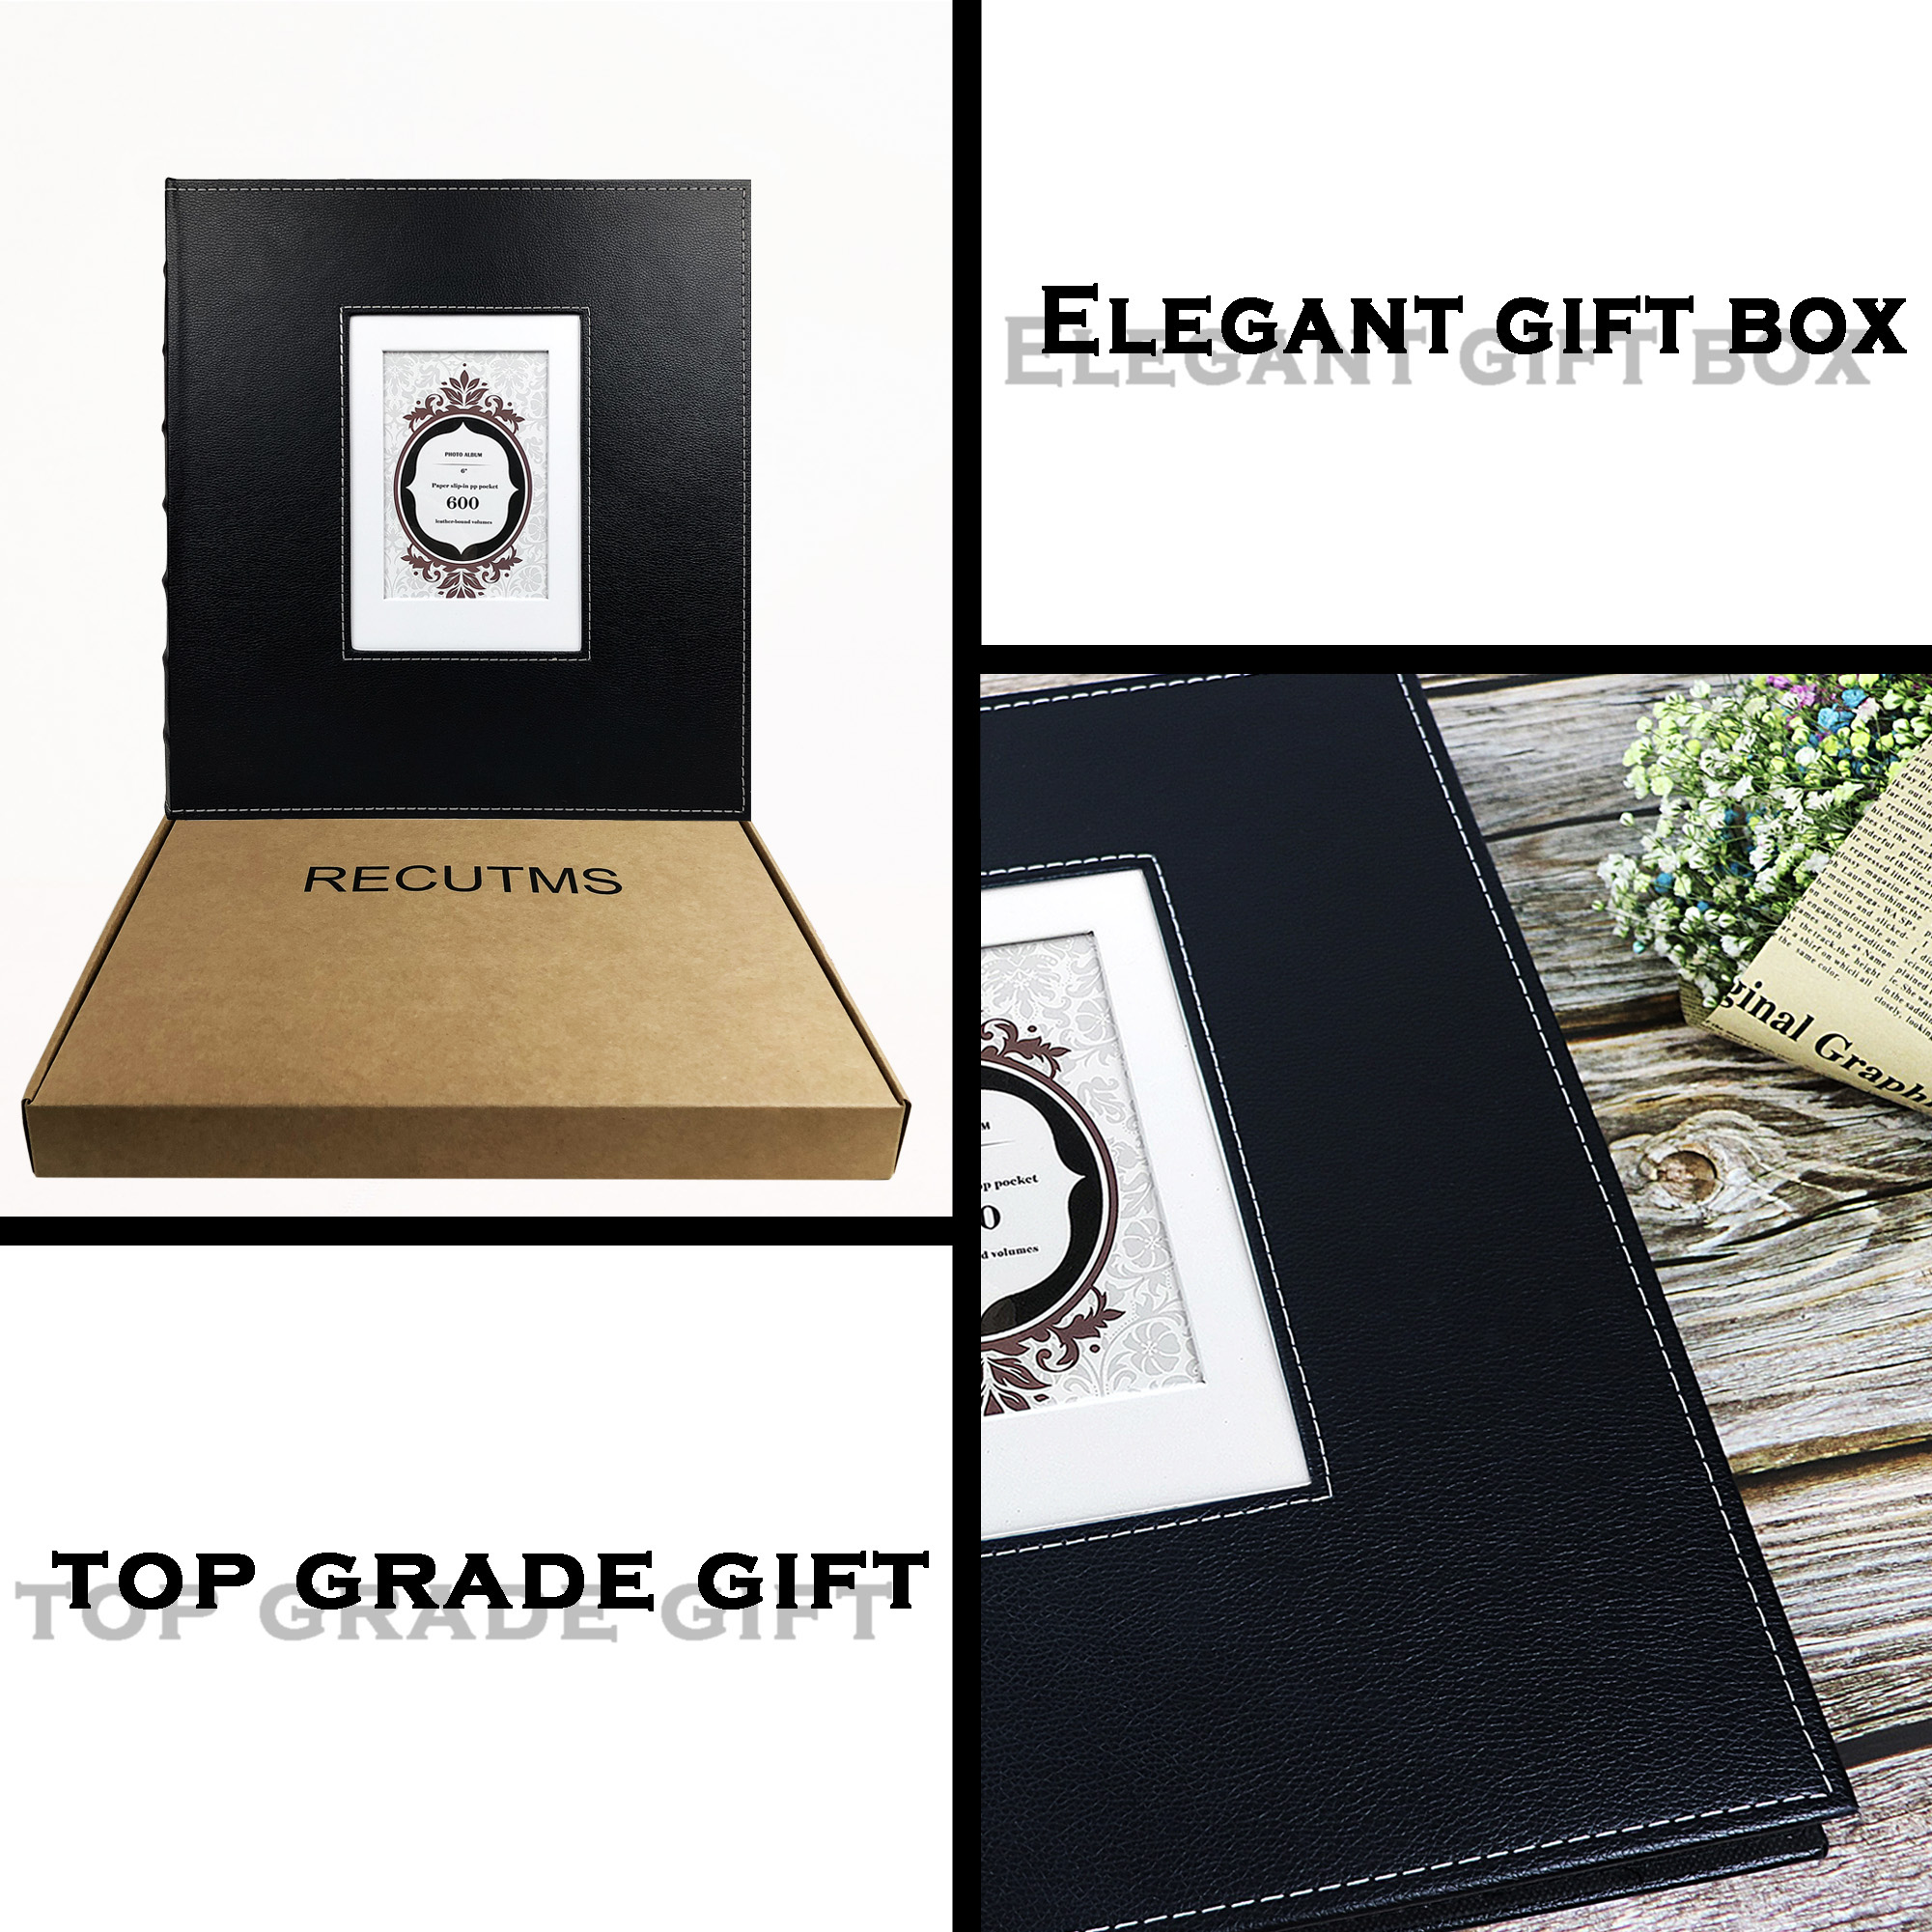 Recutms Cover Photo Album 600 Pockets Hold 4x6 Photos Rose Pattern Pu Leather Picture Albums Holds 600 Horizontal And Vertical Photos Book With Black Pages Gift Family Wedding Anniversary Champagne Bookshelf Albums Home